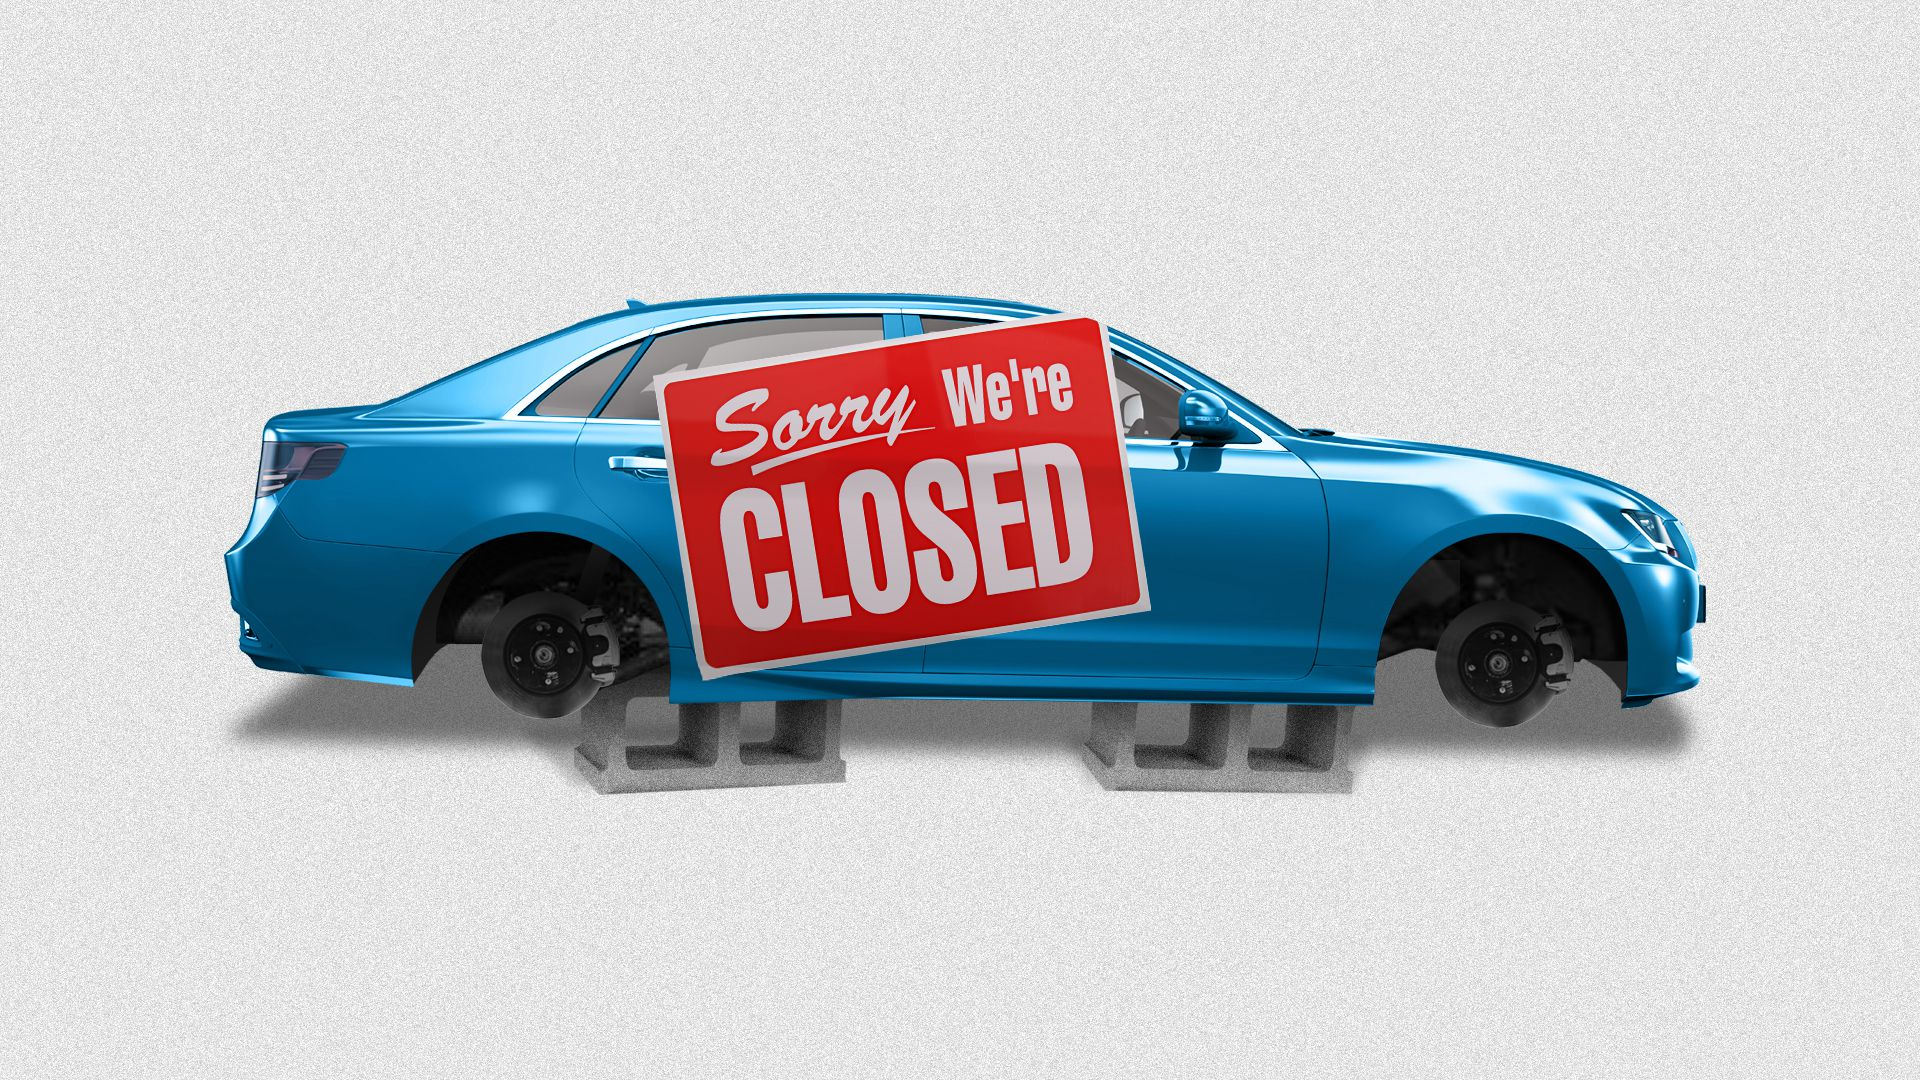 Illustration of a car propped on cinder blocks, with a closed sign across the side